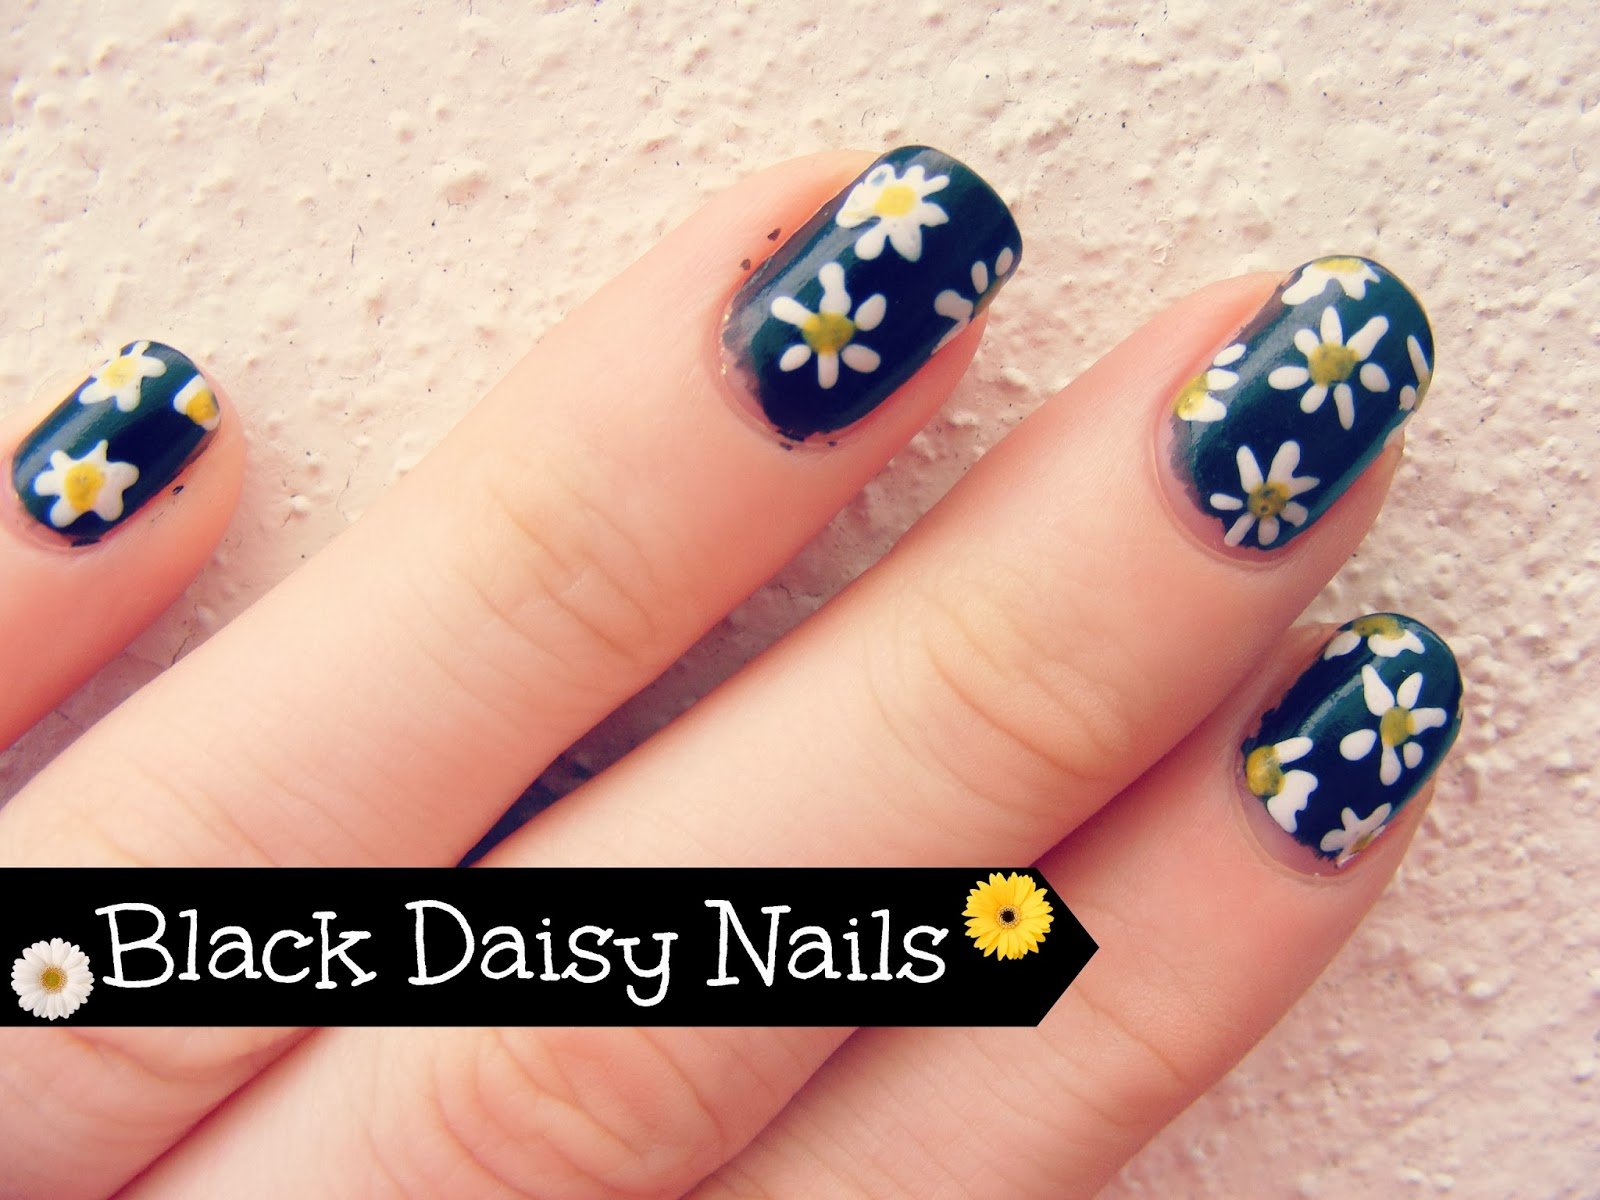 Black Daisy Nails | oh hey there rachel